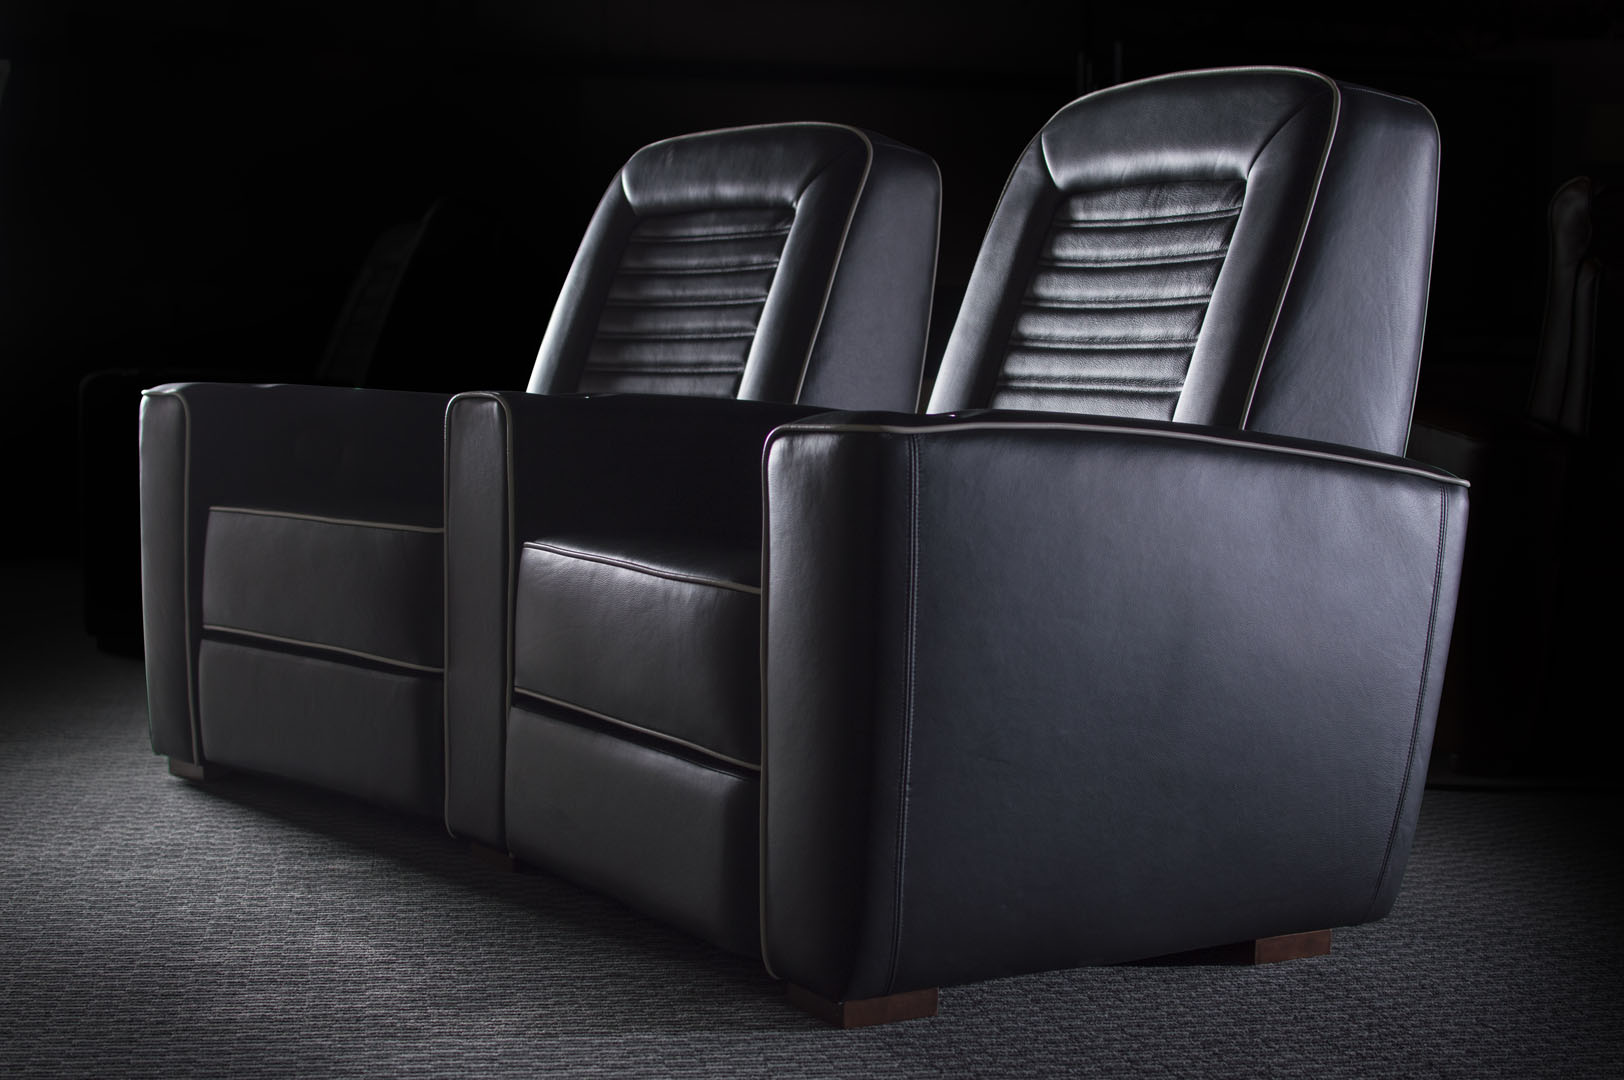 lilliana-Luxe-Leather-Onyx-twoseats1